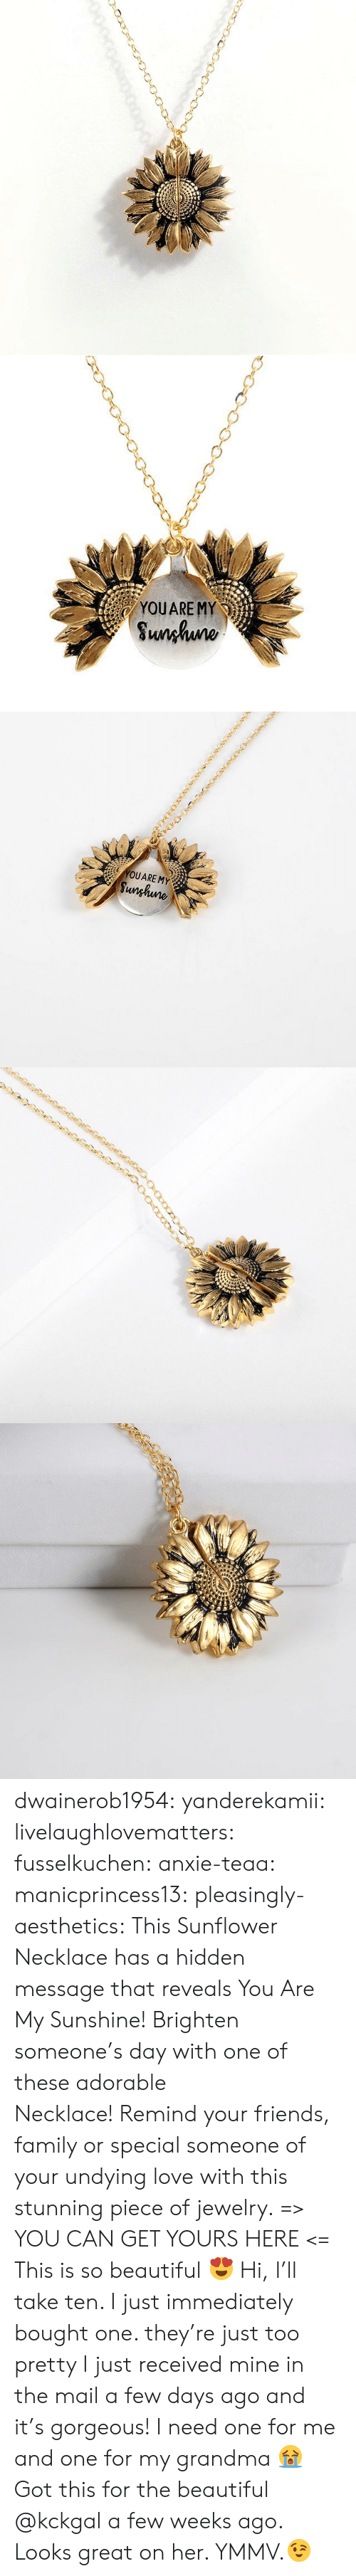 a-few-weeks: YOUARE MY  Sunhuno   YOUARE MY  Sunghune dwainerob1954:  yanderekamii:  livelaughlovematters:  fusselkuchen: anxie-teaa:   manicprincess13:   pleasingly-aesthetics:  This Sunflower Necklace has a hidden message that reveals You Are My Sunshine! Brighten someone's day with one of these adorable Necklace! Remind your friends, family or special someone of your undying love with this stunning piece of jewelry. => YOU CAN GET YOURS HERE <=   This is so beautiful 😍    Hi, I'll take ten.    I just immediately bought one. they're just too pretty   I just received mine in the mail a few days ago and it's gorgeous!  I need one for me and one for my grandma 😭  Got this for the beautiful @kckgal a few weeks ago.  Looks great on her. YMMV.😉